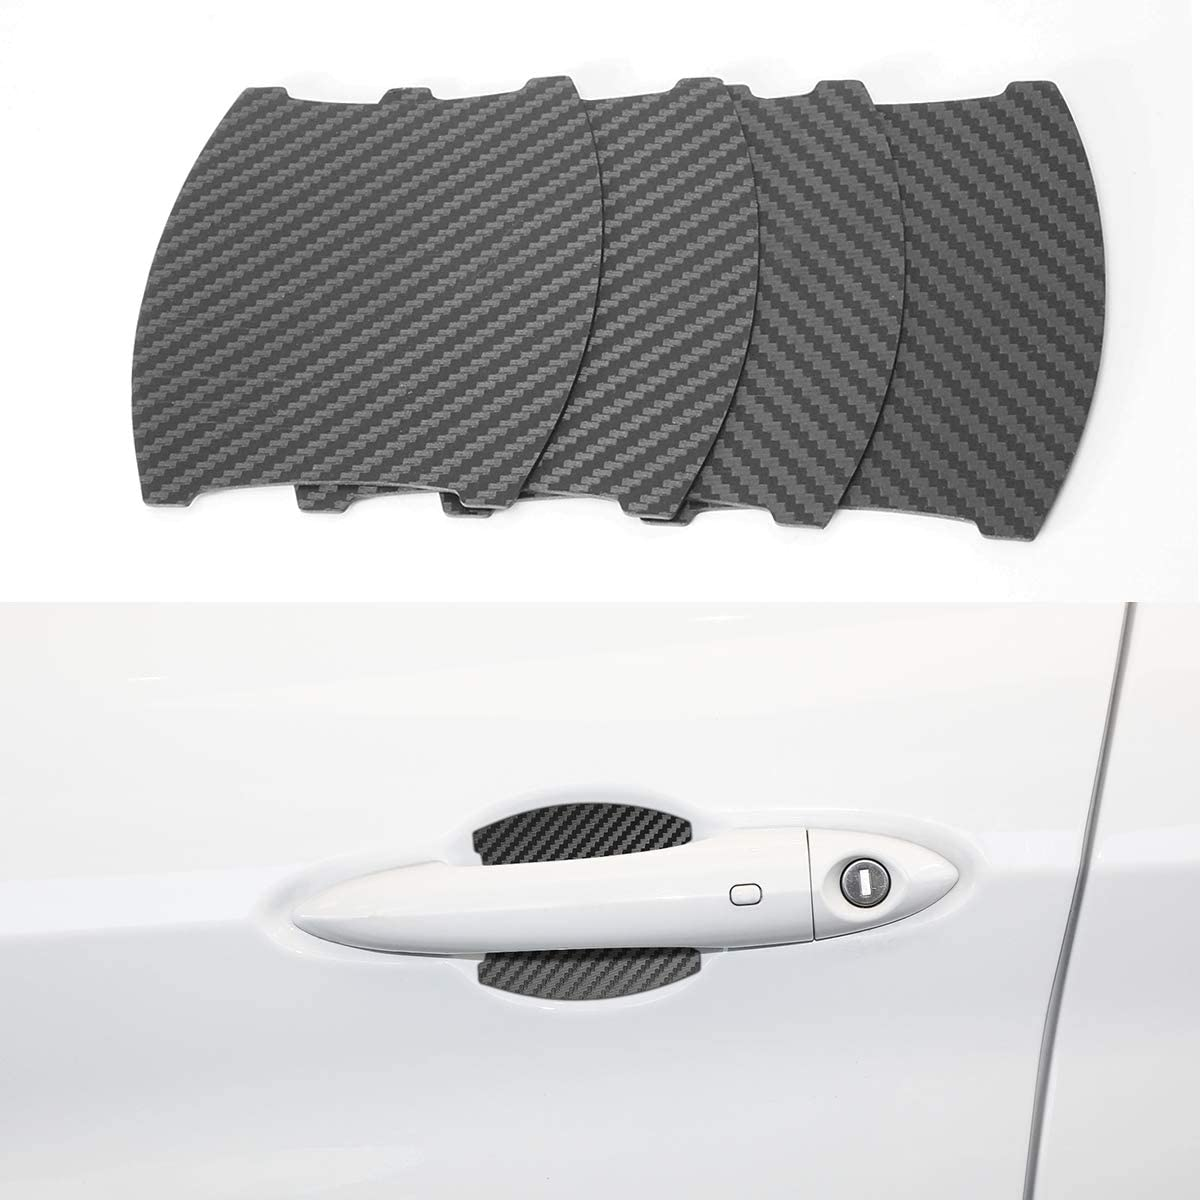 Door Handle Cup Scratch Protector Cover Guards Film Trim Magnetic Door Cup Paint Anti - Scratch Cover Accessories Fit for Alfa Romeo Stelvio (4 Pcs)